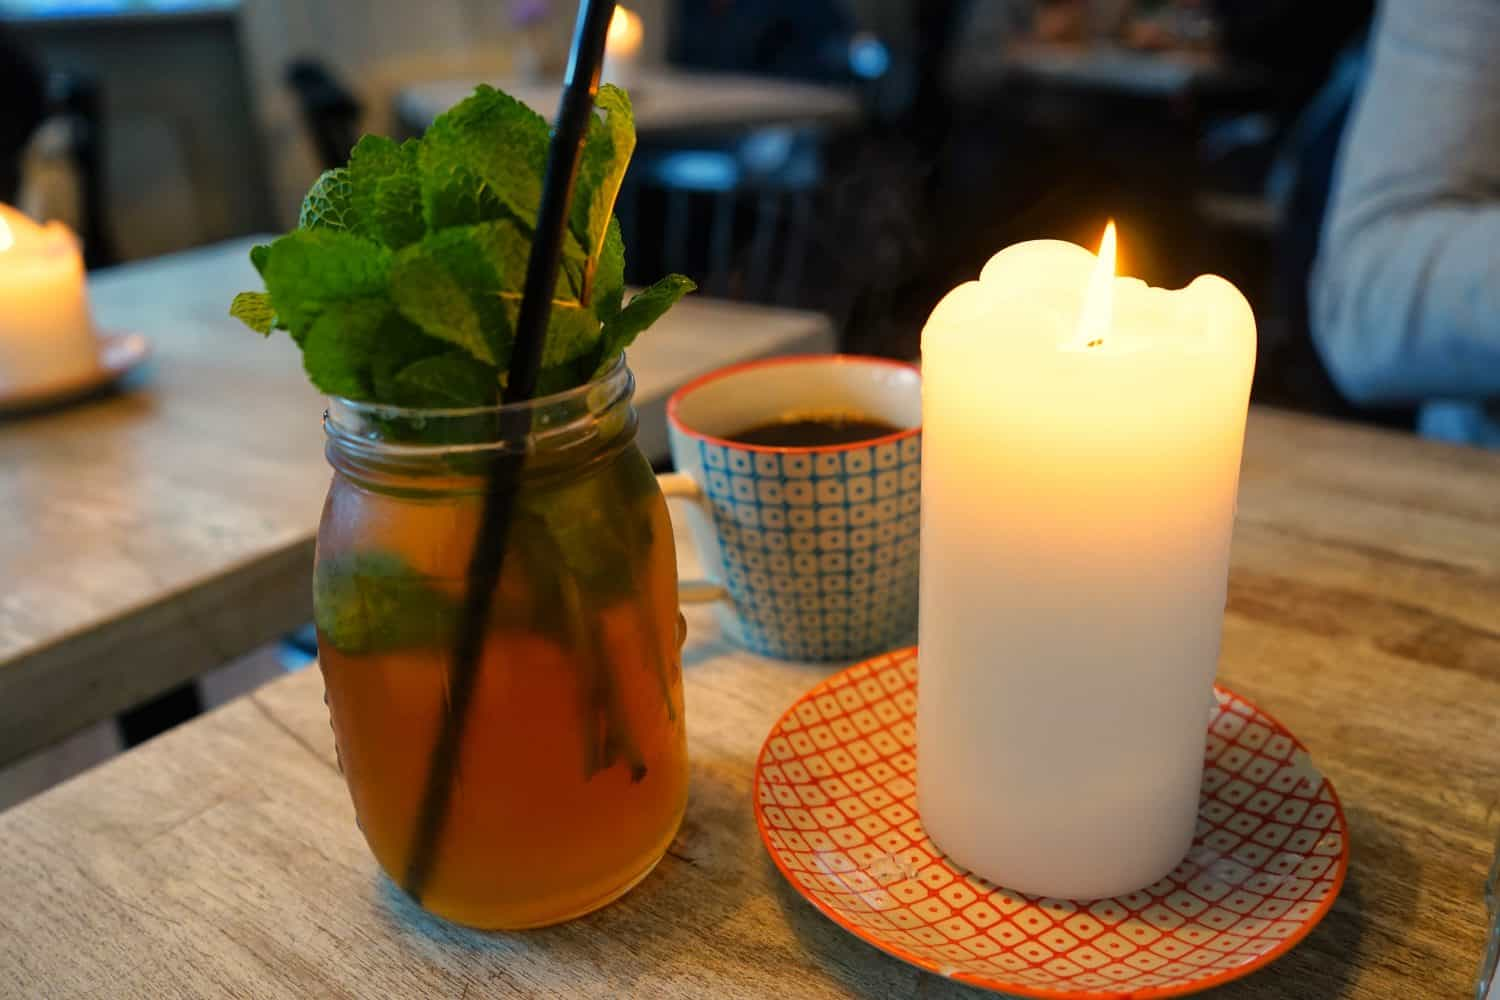 Tea and candles in Copenhagen